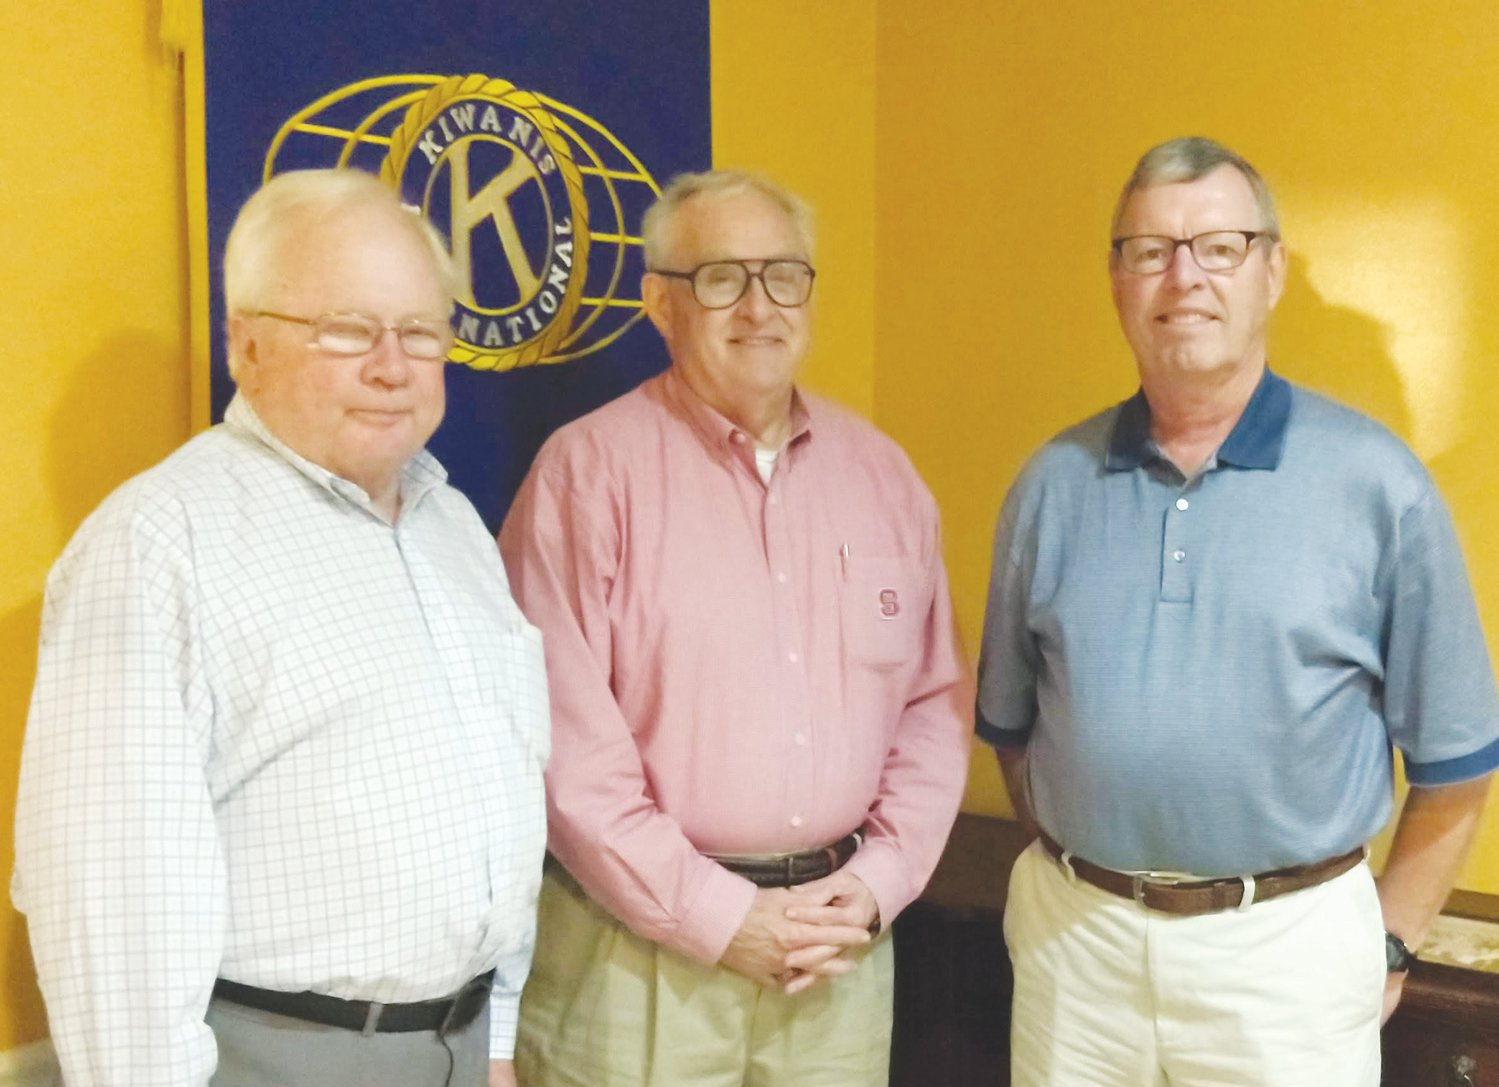 Guests of the Roxboro Kiwanis Club at the club's Oct. 14 meeting included, from left, Raleigh Kiwanis Club members Phil Kirk, Scott Grantham and Martin Vernon.